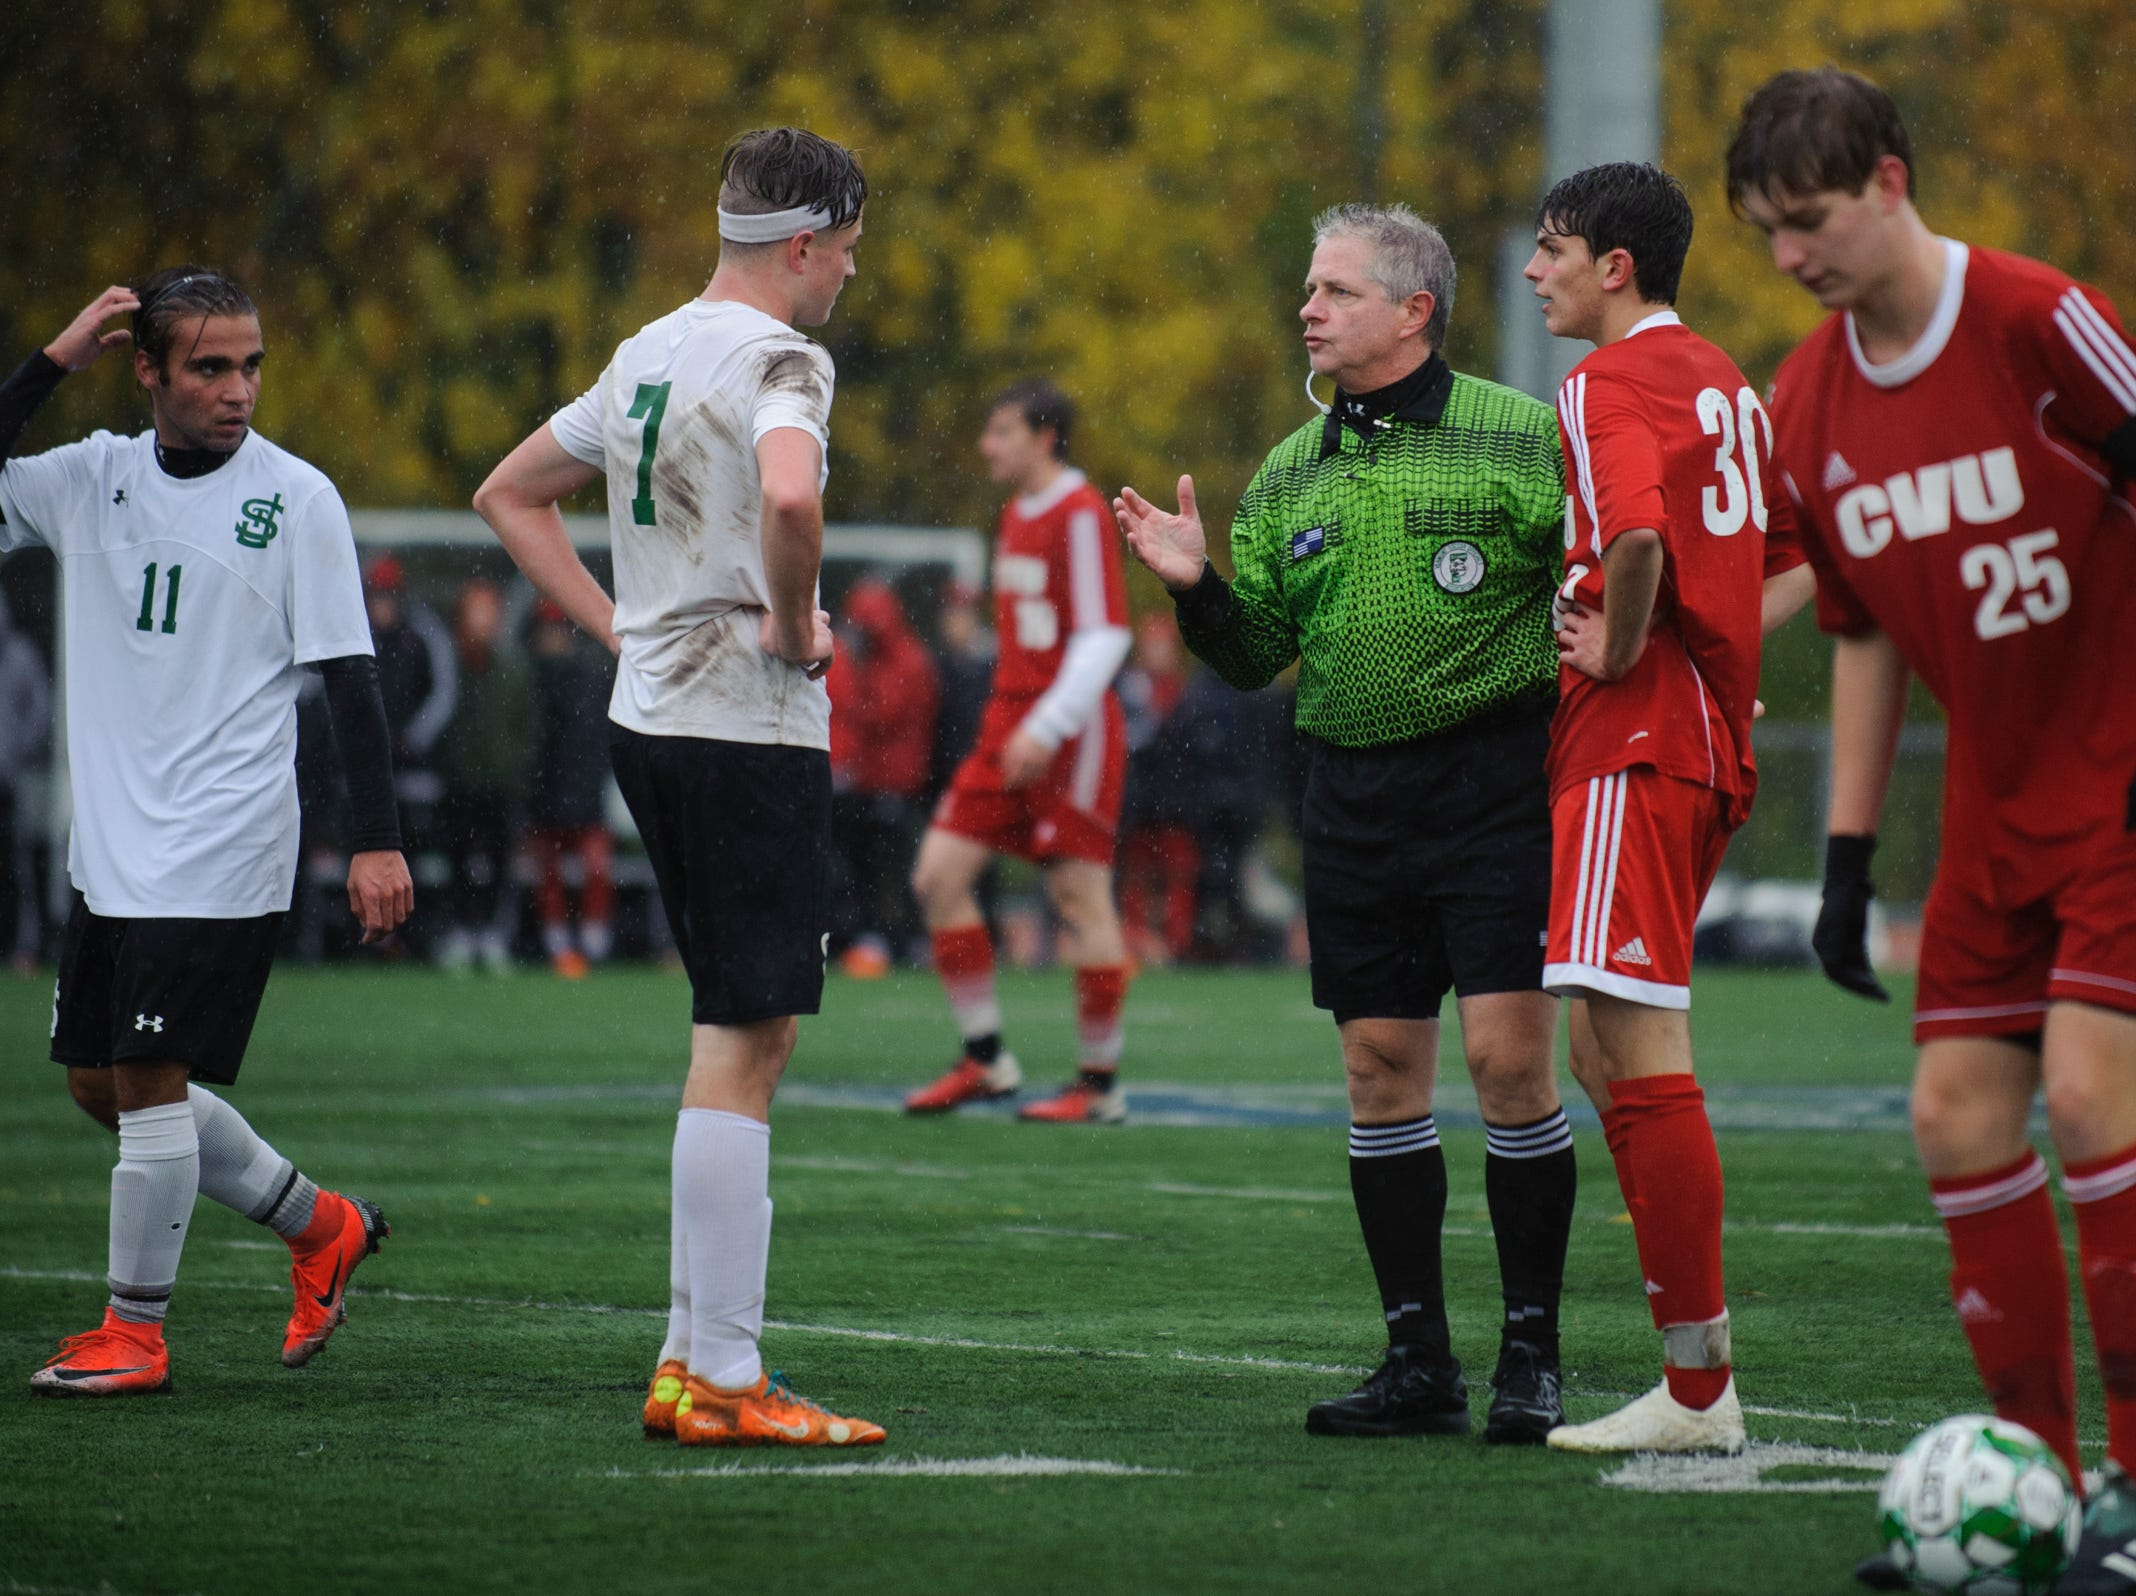 The referee has a talk with St. Johnsbury's Konrad Tillman (7) and CVU's Jack Sinopoli (30) during the Division I boys soccer championship game between the St. Johnsbury Hilltoppers and the Champlain Valley Union Redhawks at Buck Hard Field on Saturday morning November 3, 2018 in Burlington. (